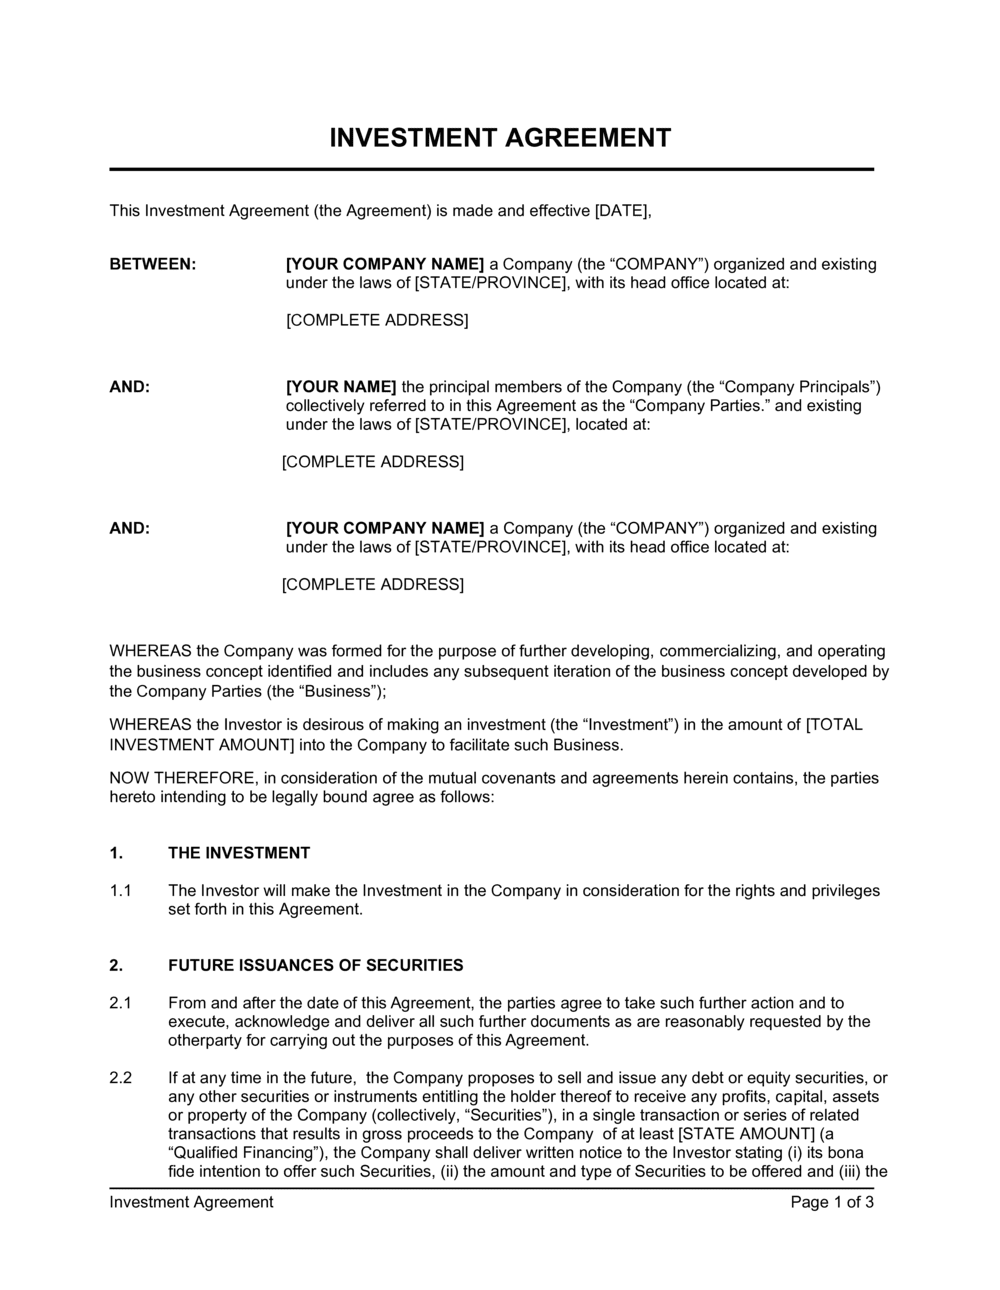 Business-in-a-Box's Investment Agreement Template